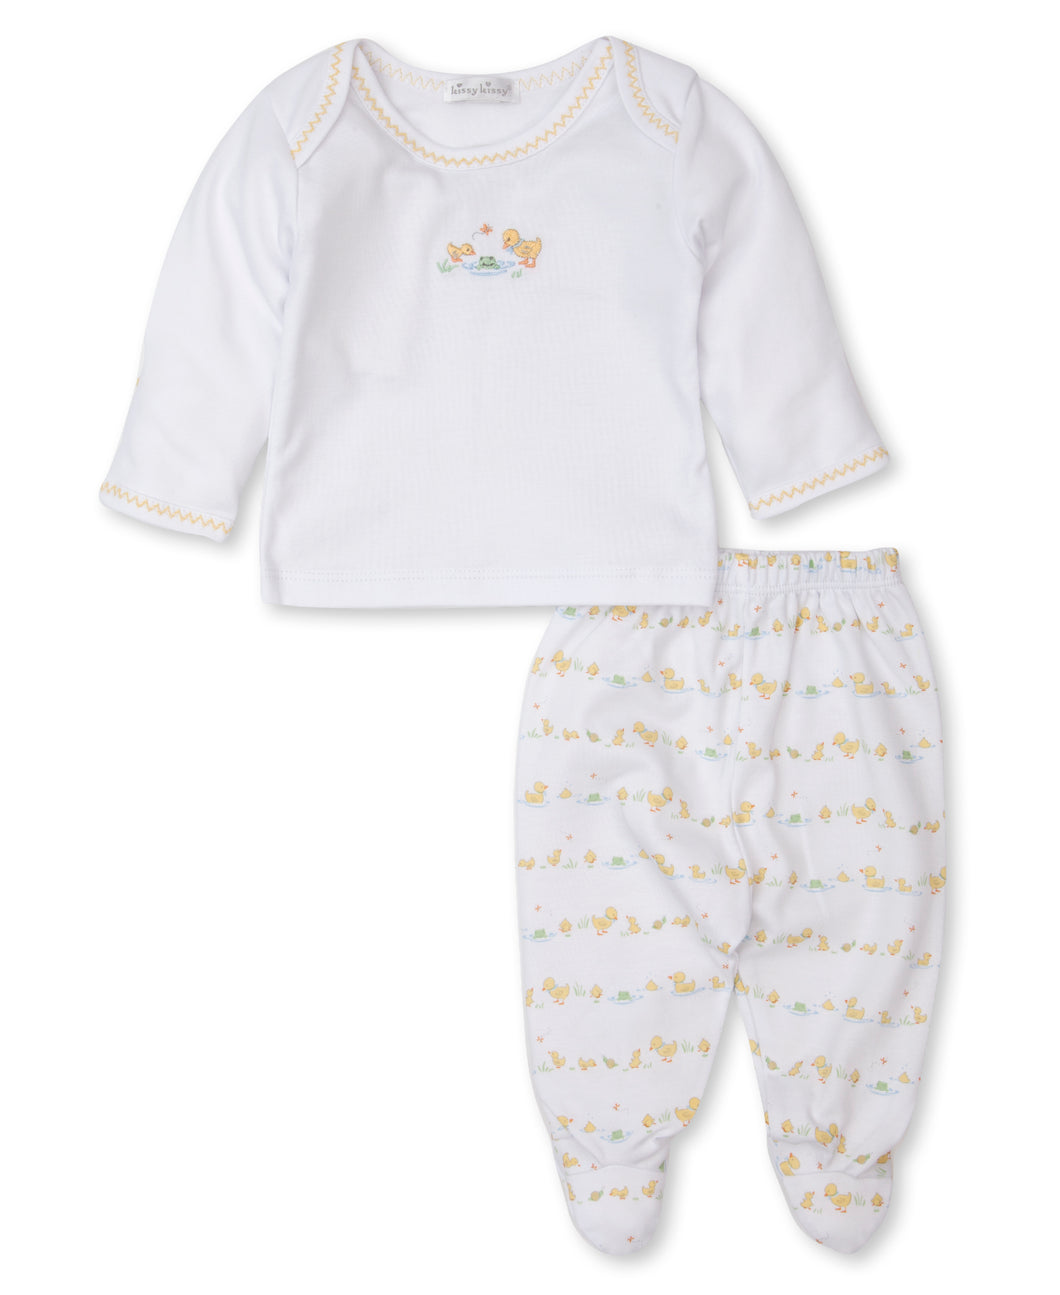 Dilly Dally Duckies Pant Set